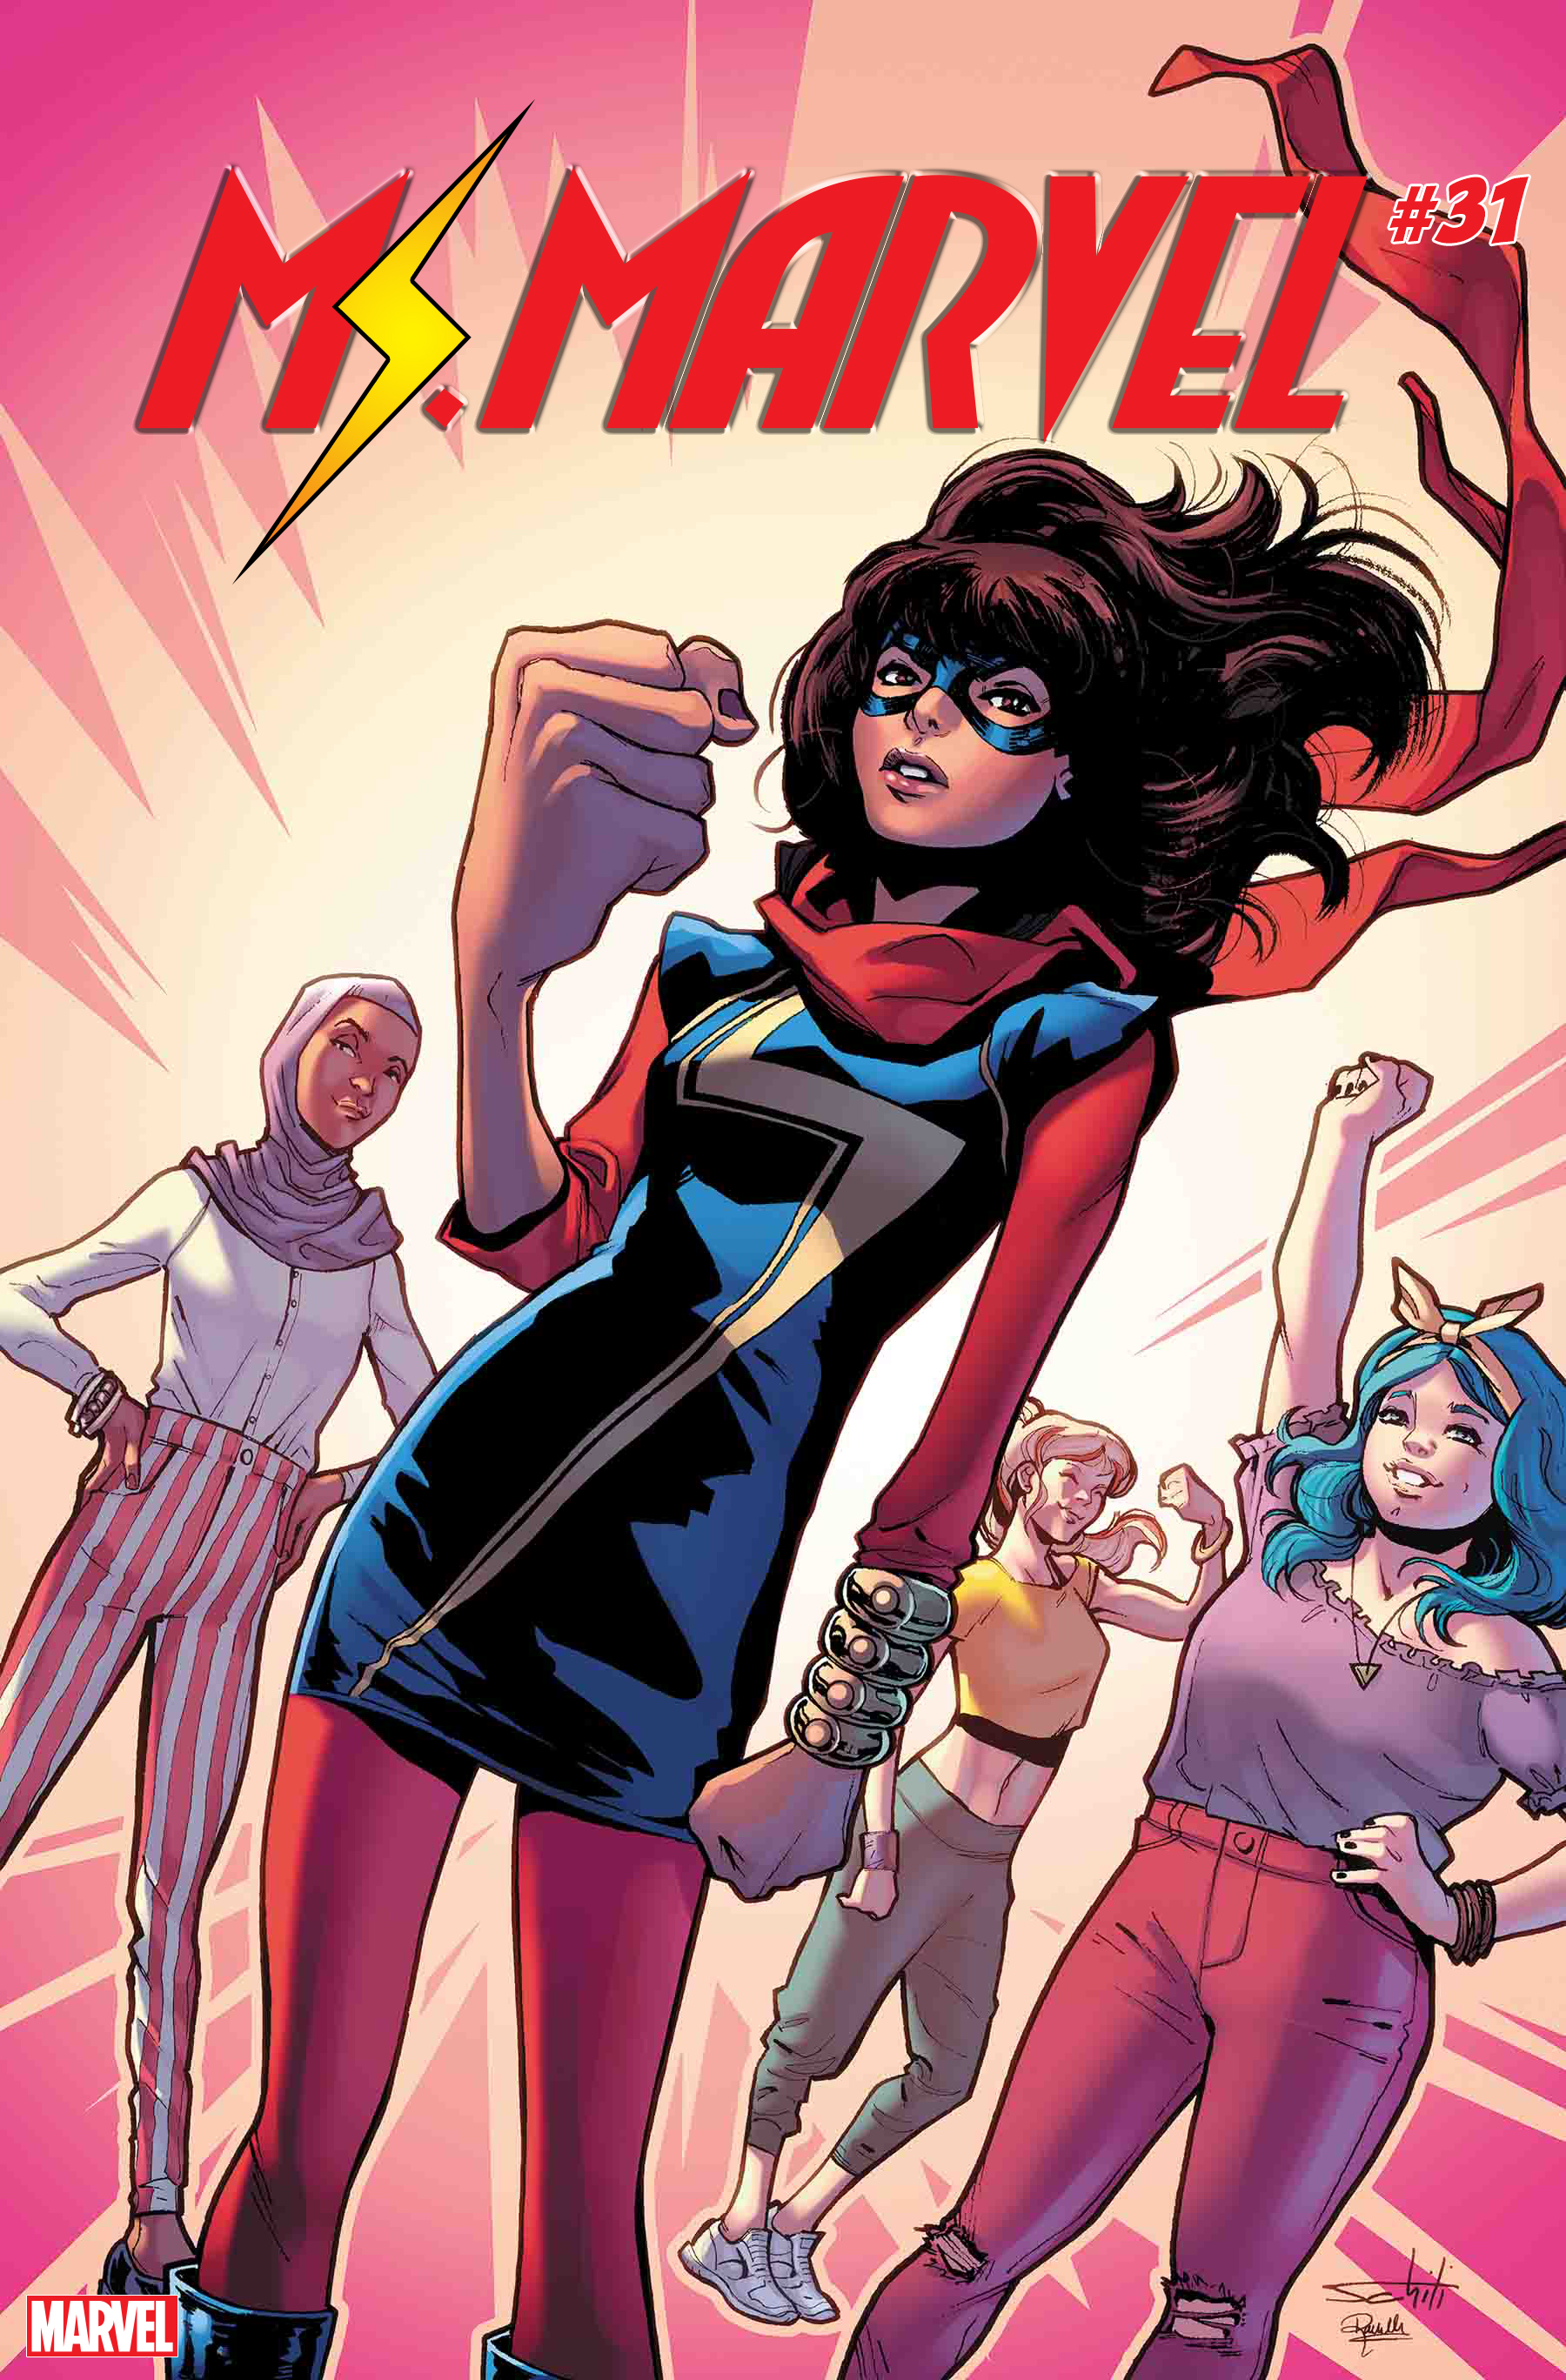 MS MARVEL #31